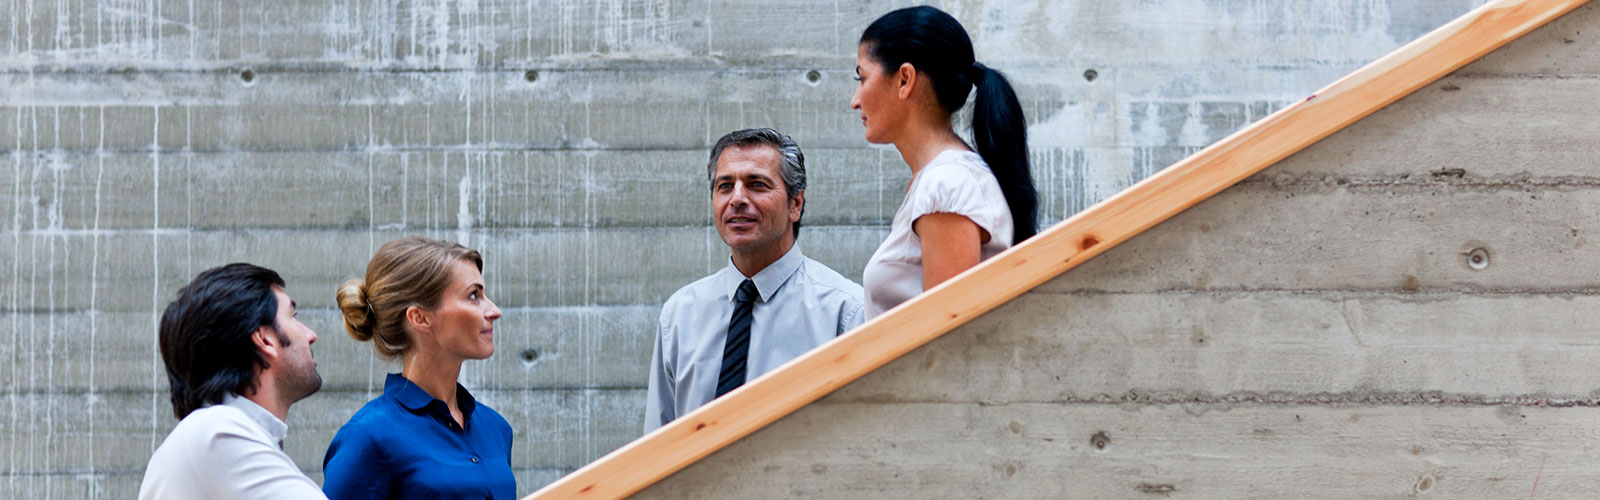 conference-men-women-talking-stairs-1600×500